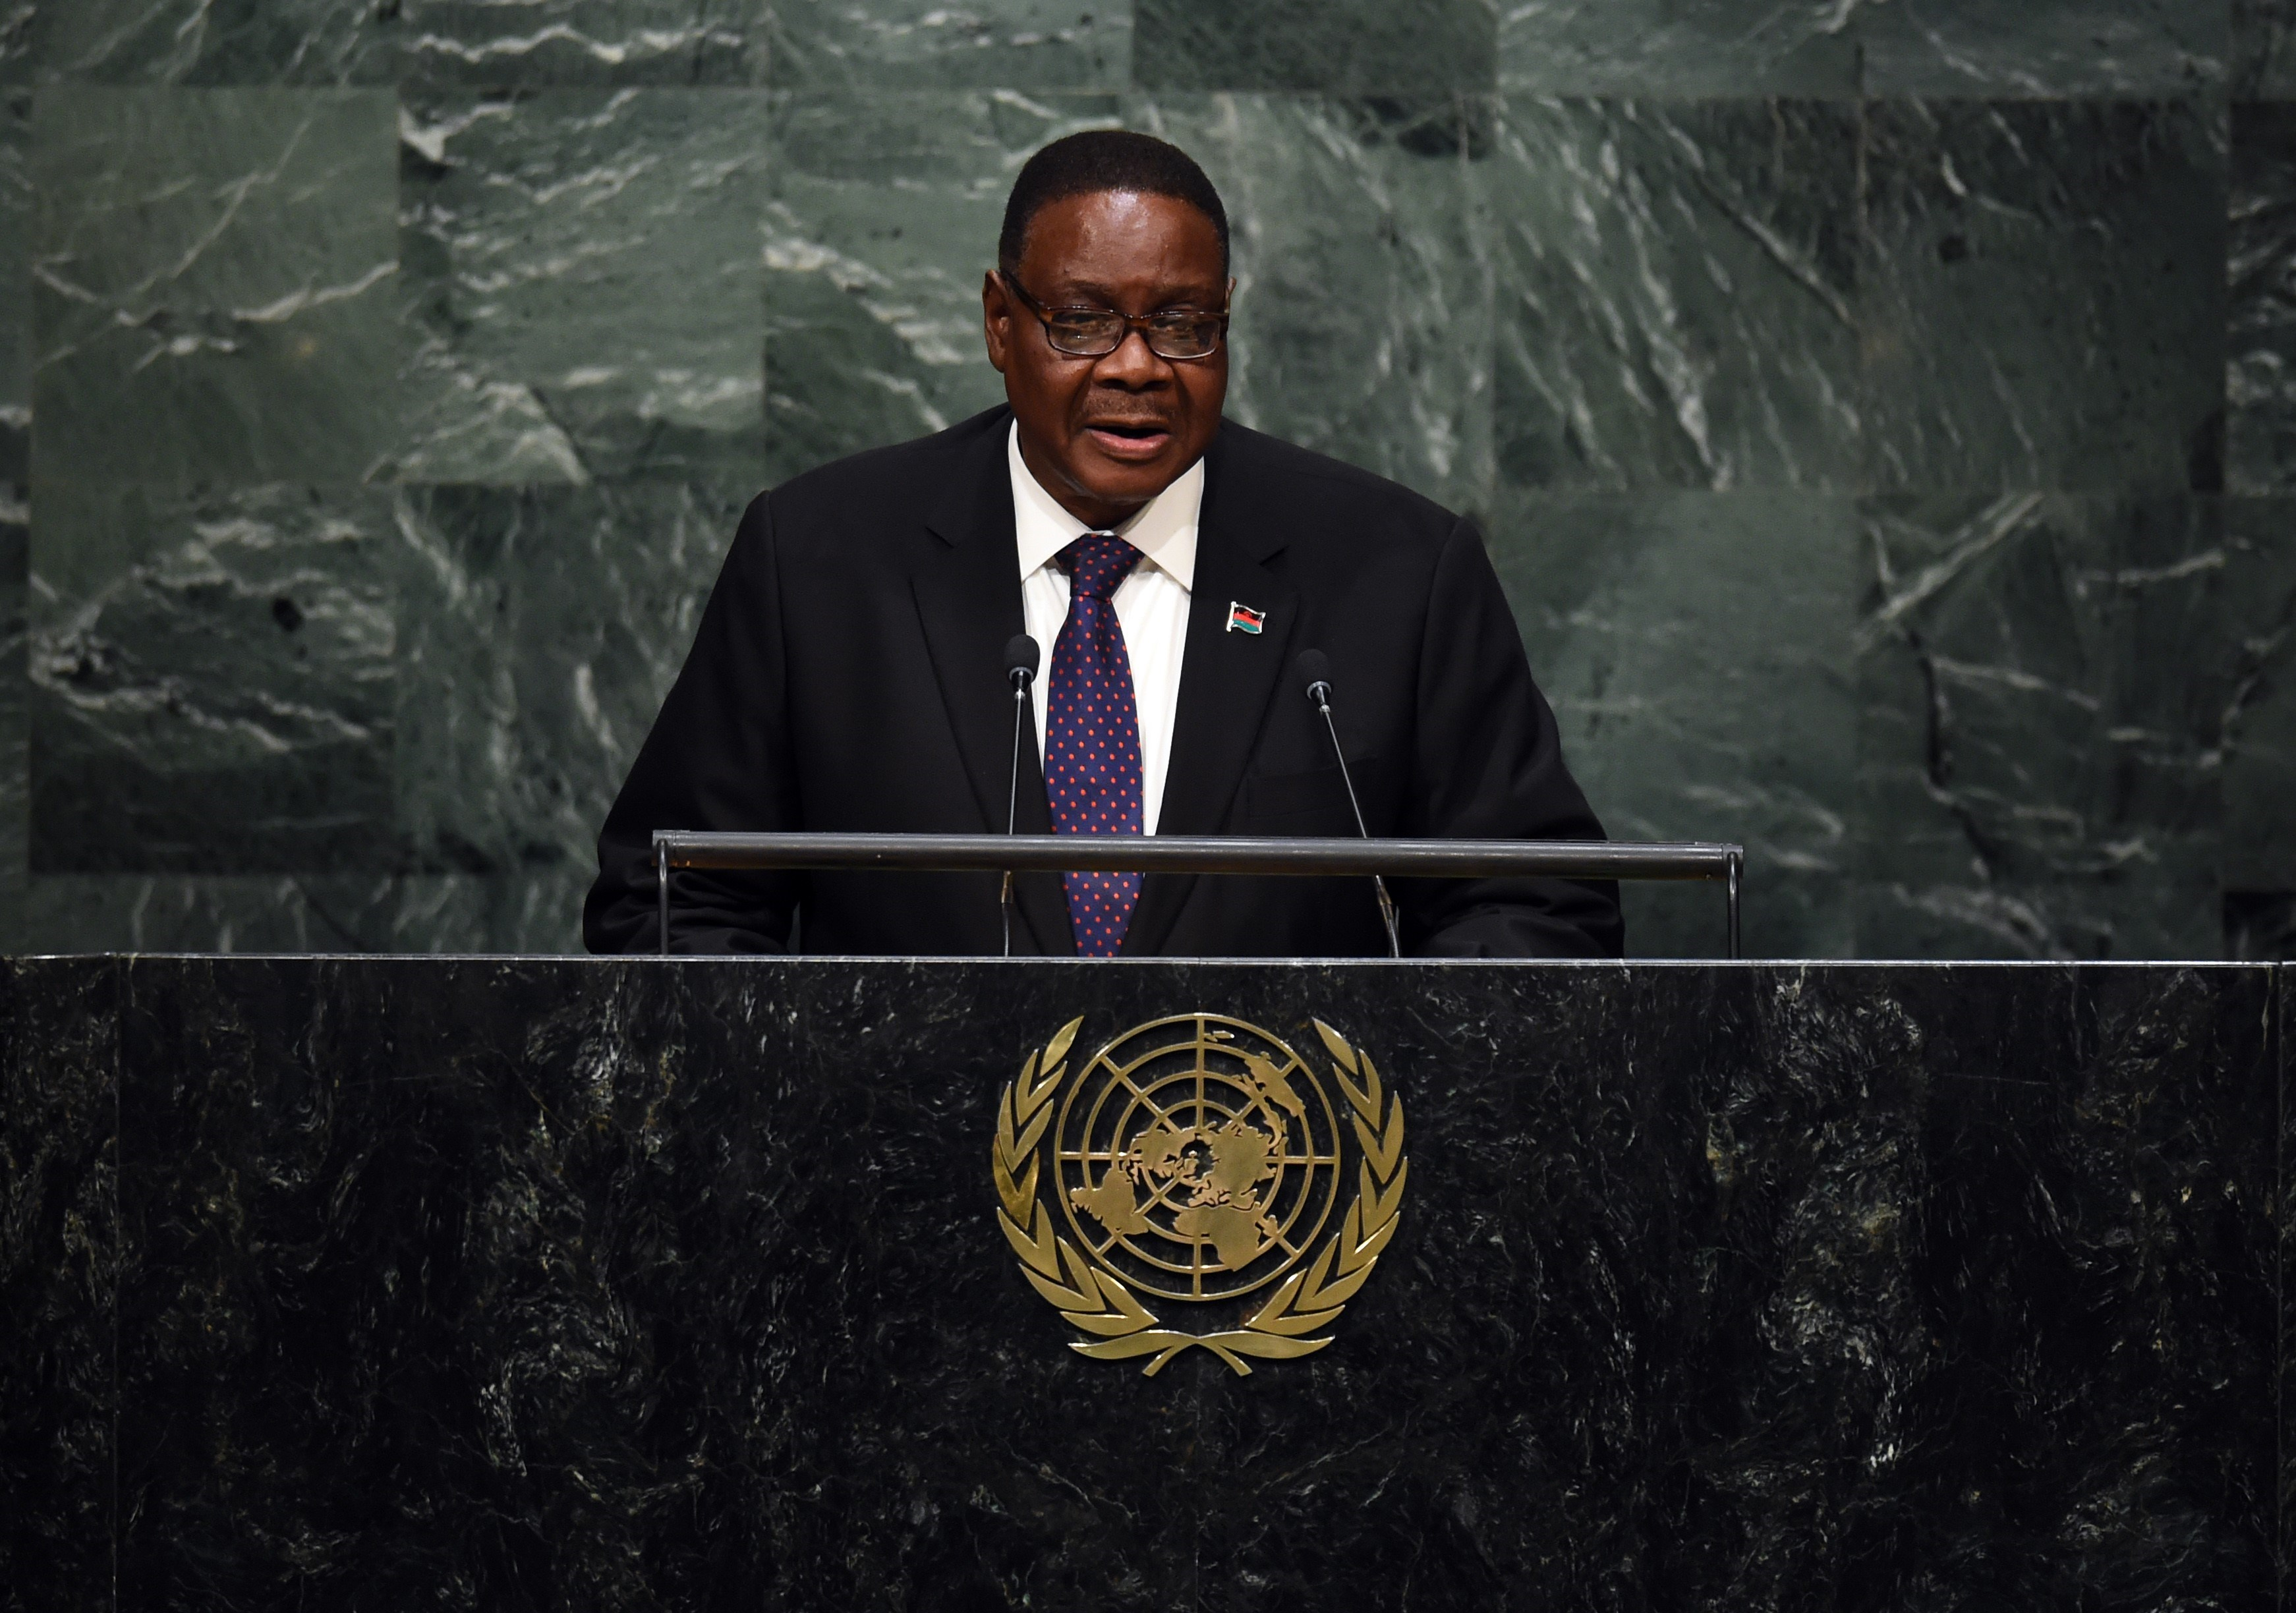 UN pull out of Malawi after vampire scare triggers mob violence